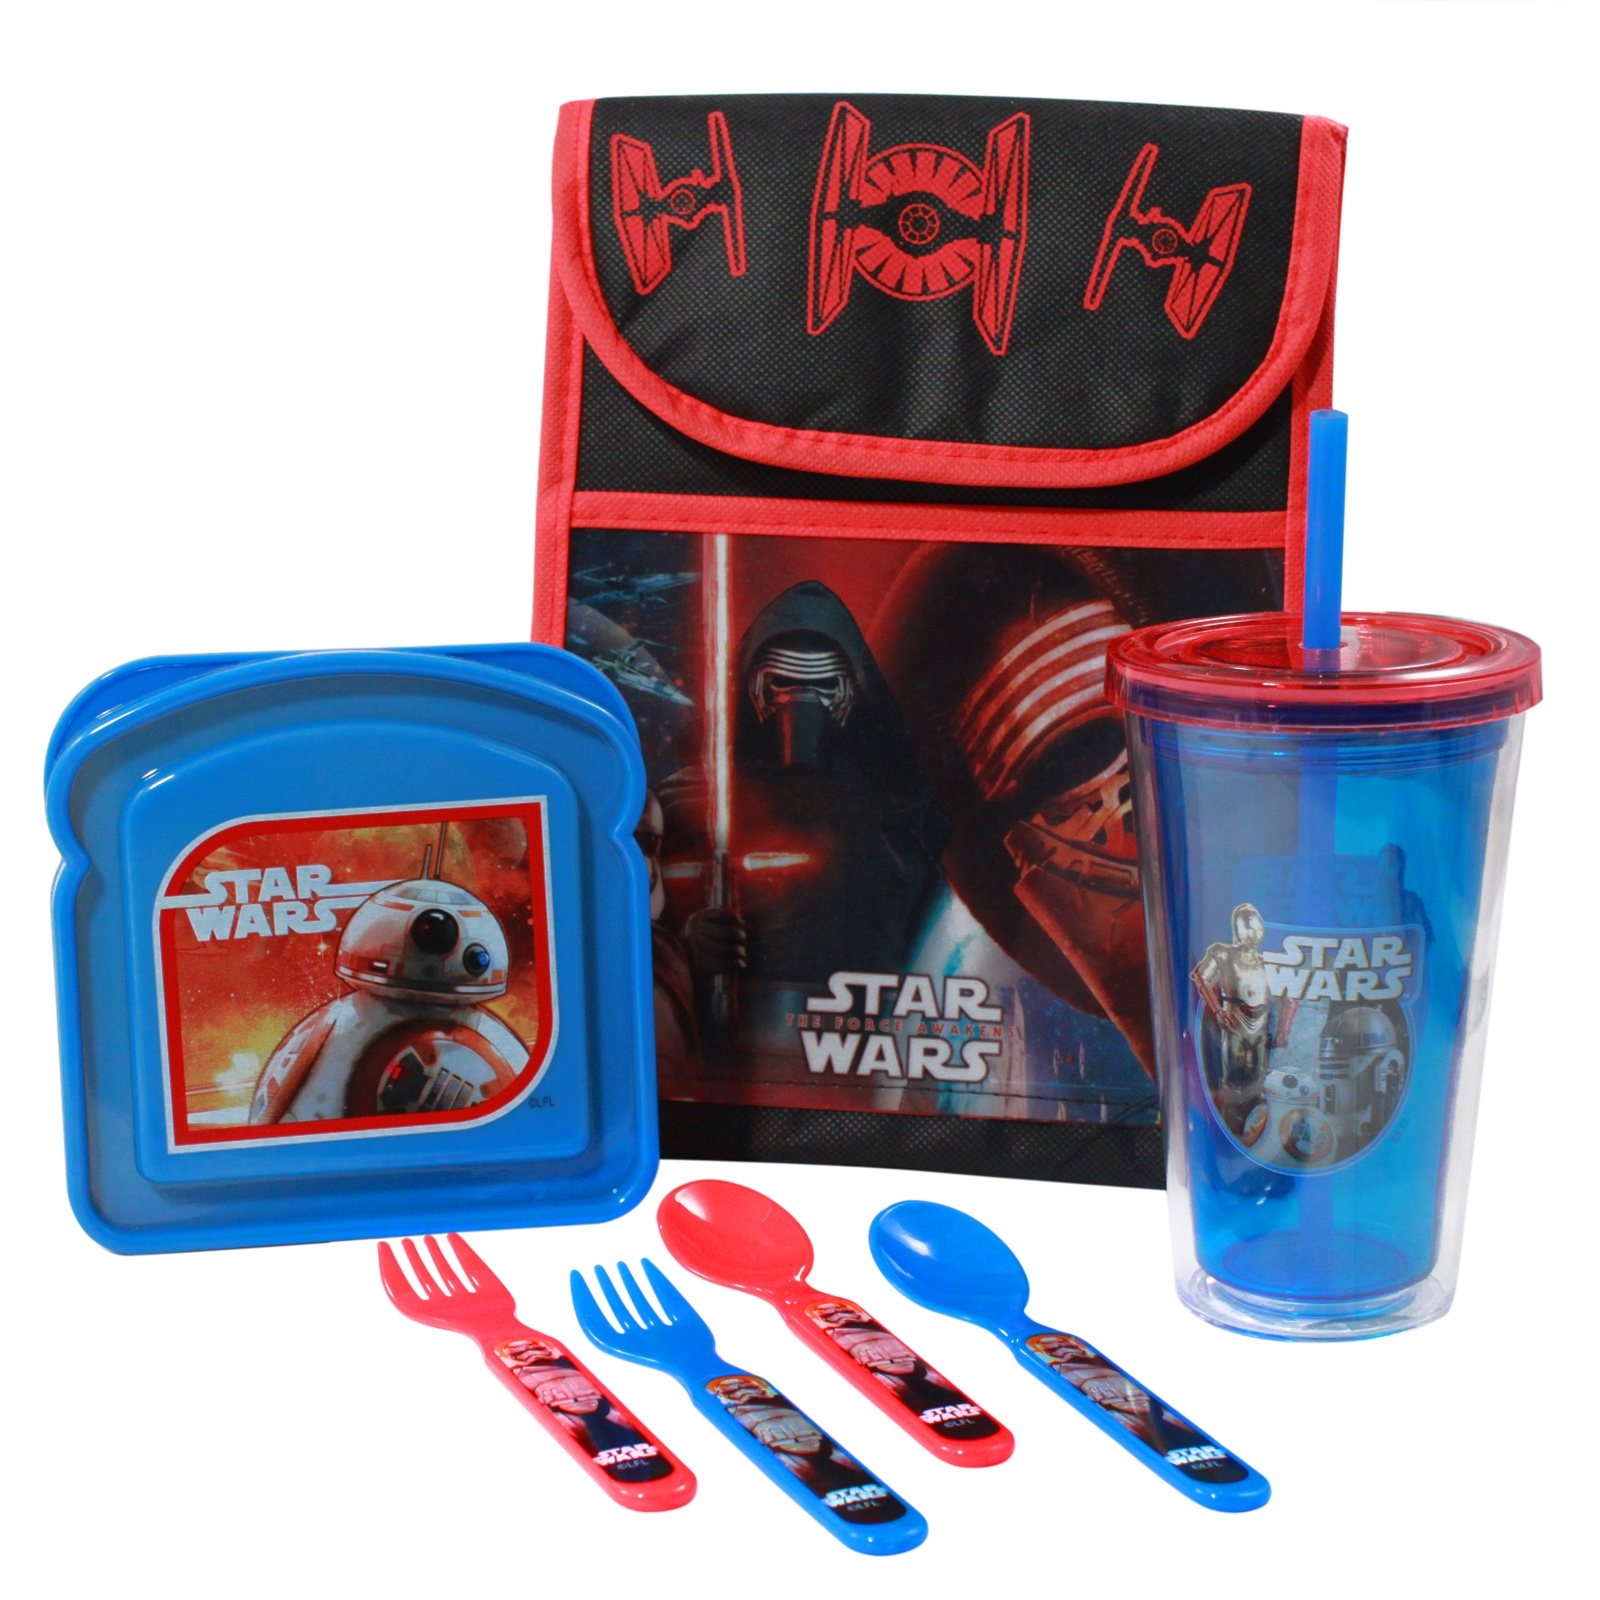 Disney Star Wars The Force Awakens Lunch Bundle with Vertical Tote